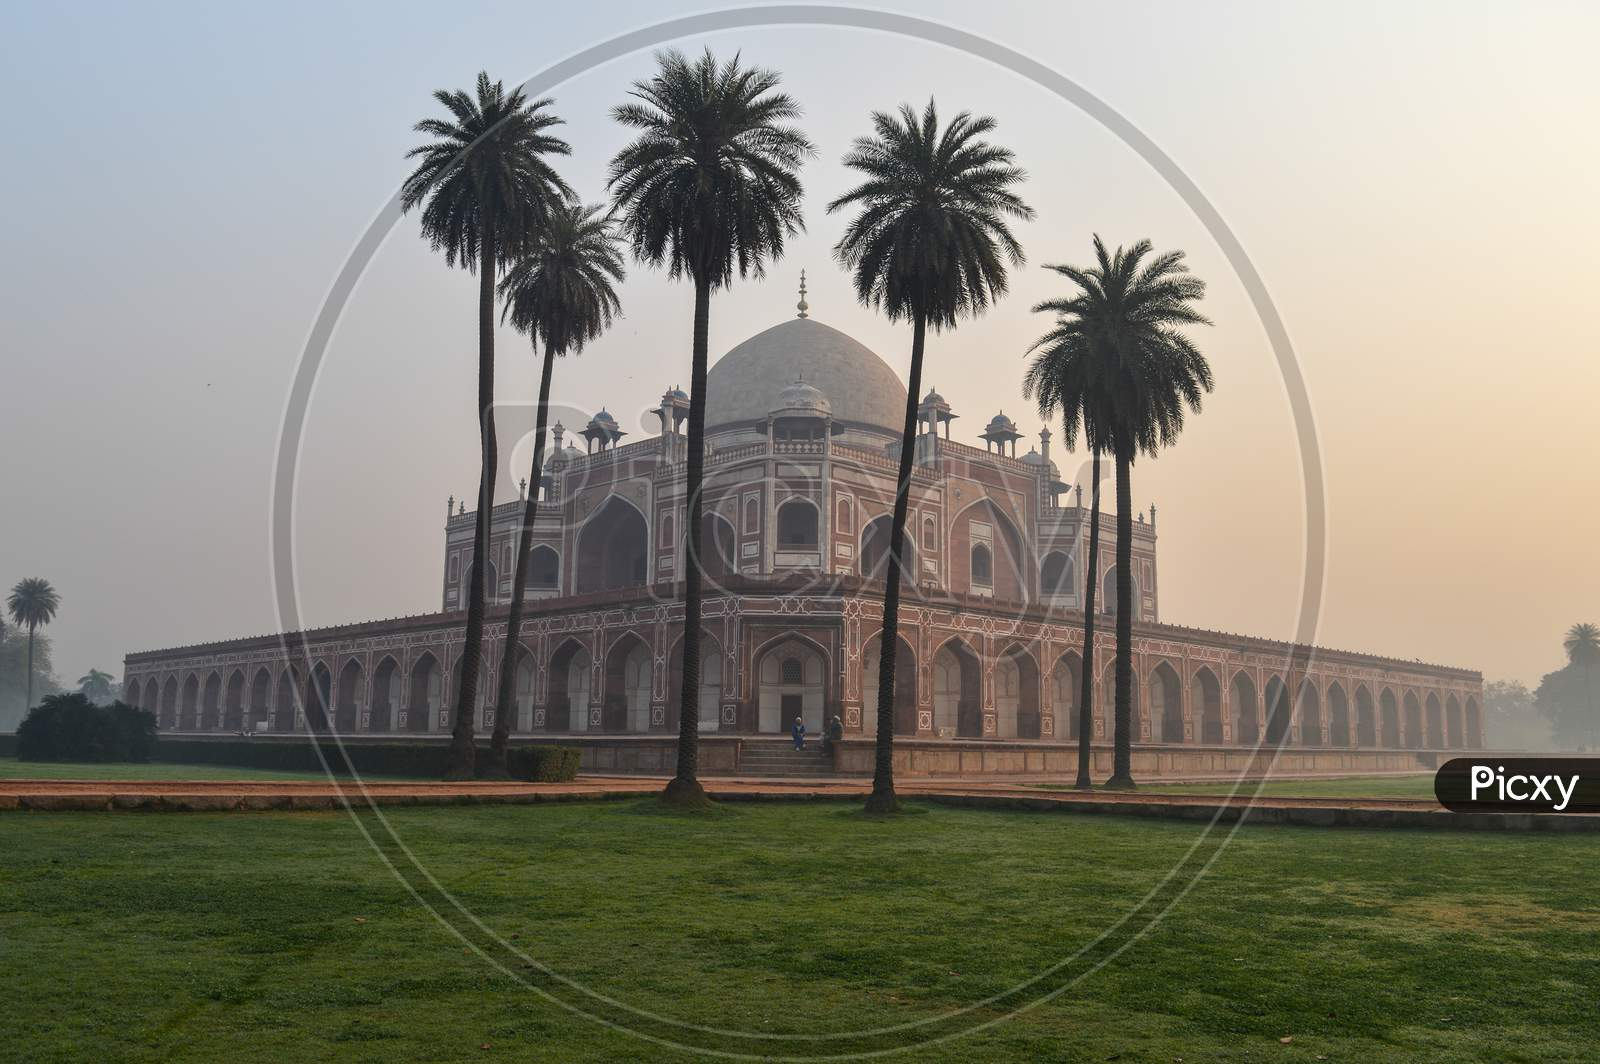 Bunch Of Palm Trees And Mesmerizing View Of Humayun Tomb Memorial From The Side Of The Lawn At Winter Foggy Morning.